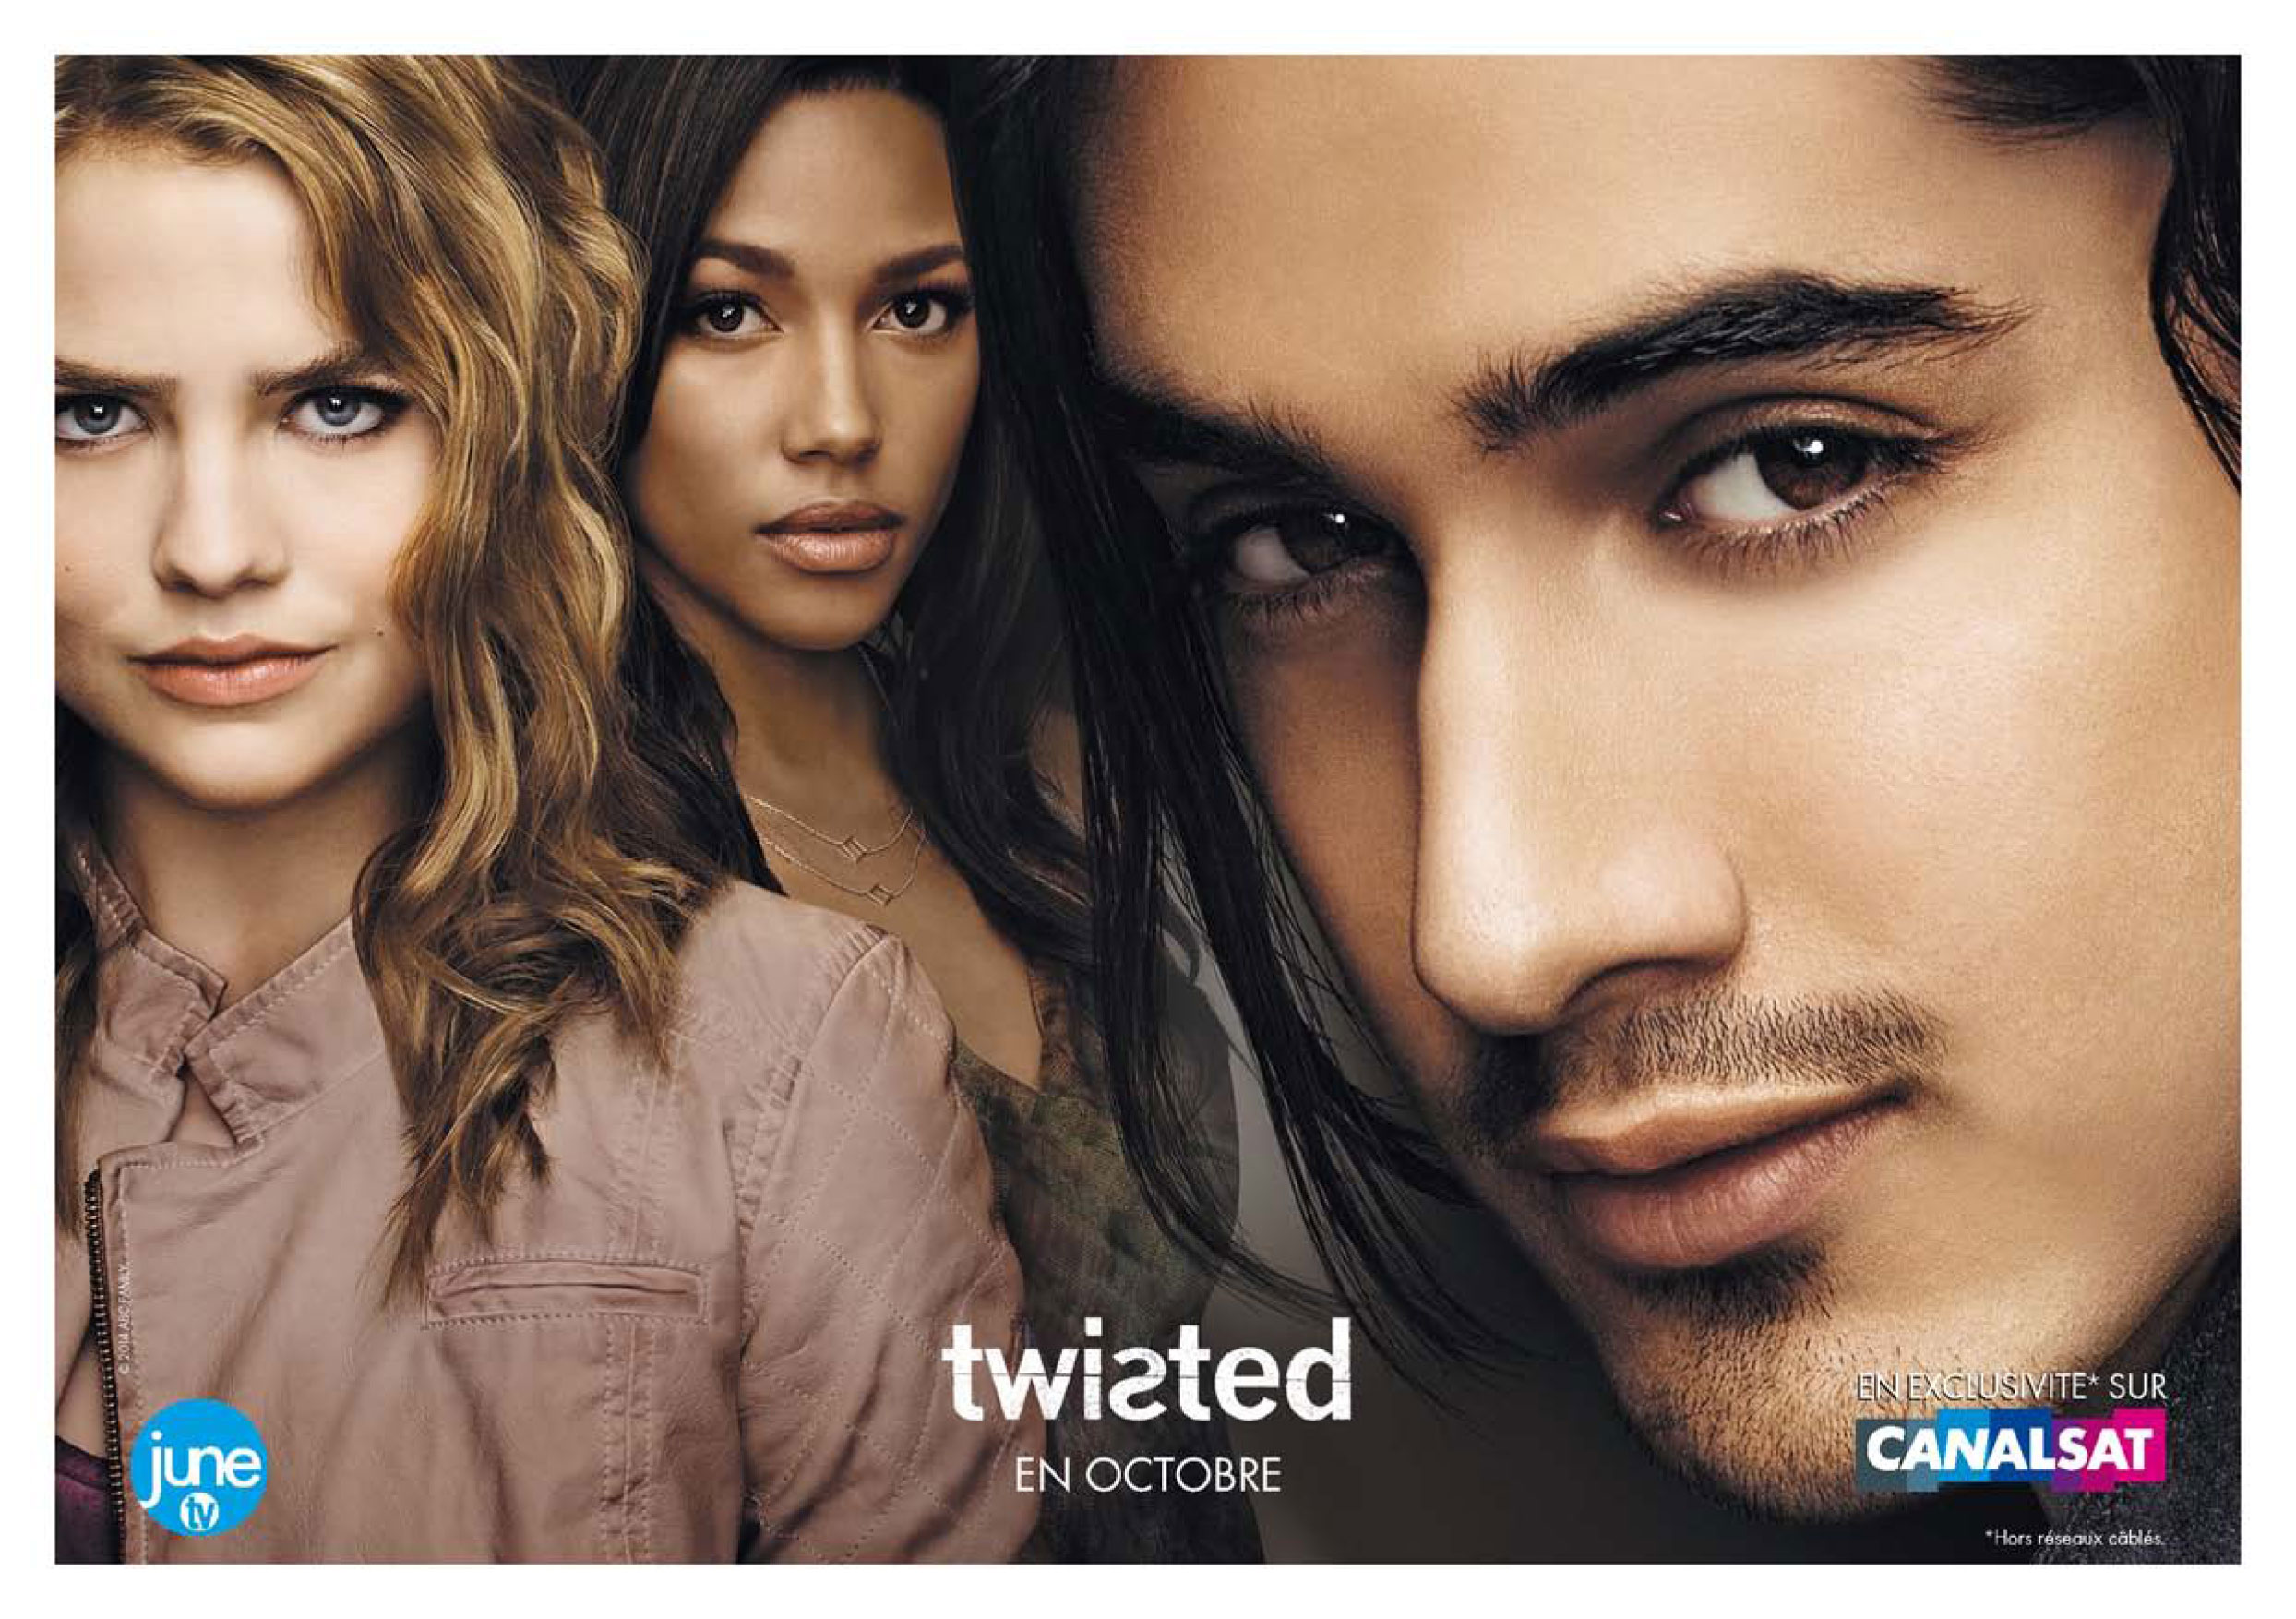 CANALSAT-SERIES_twisted